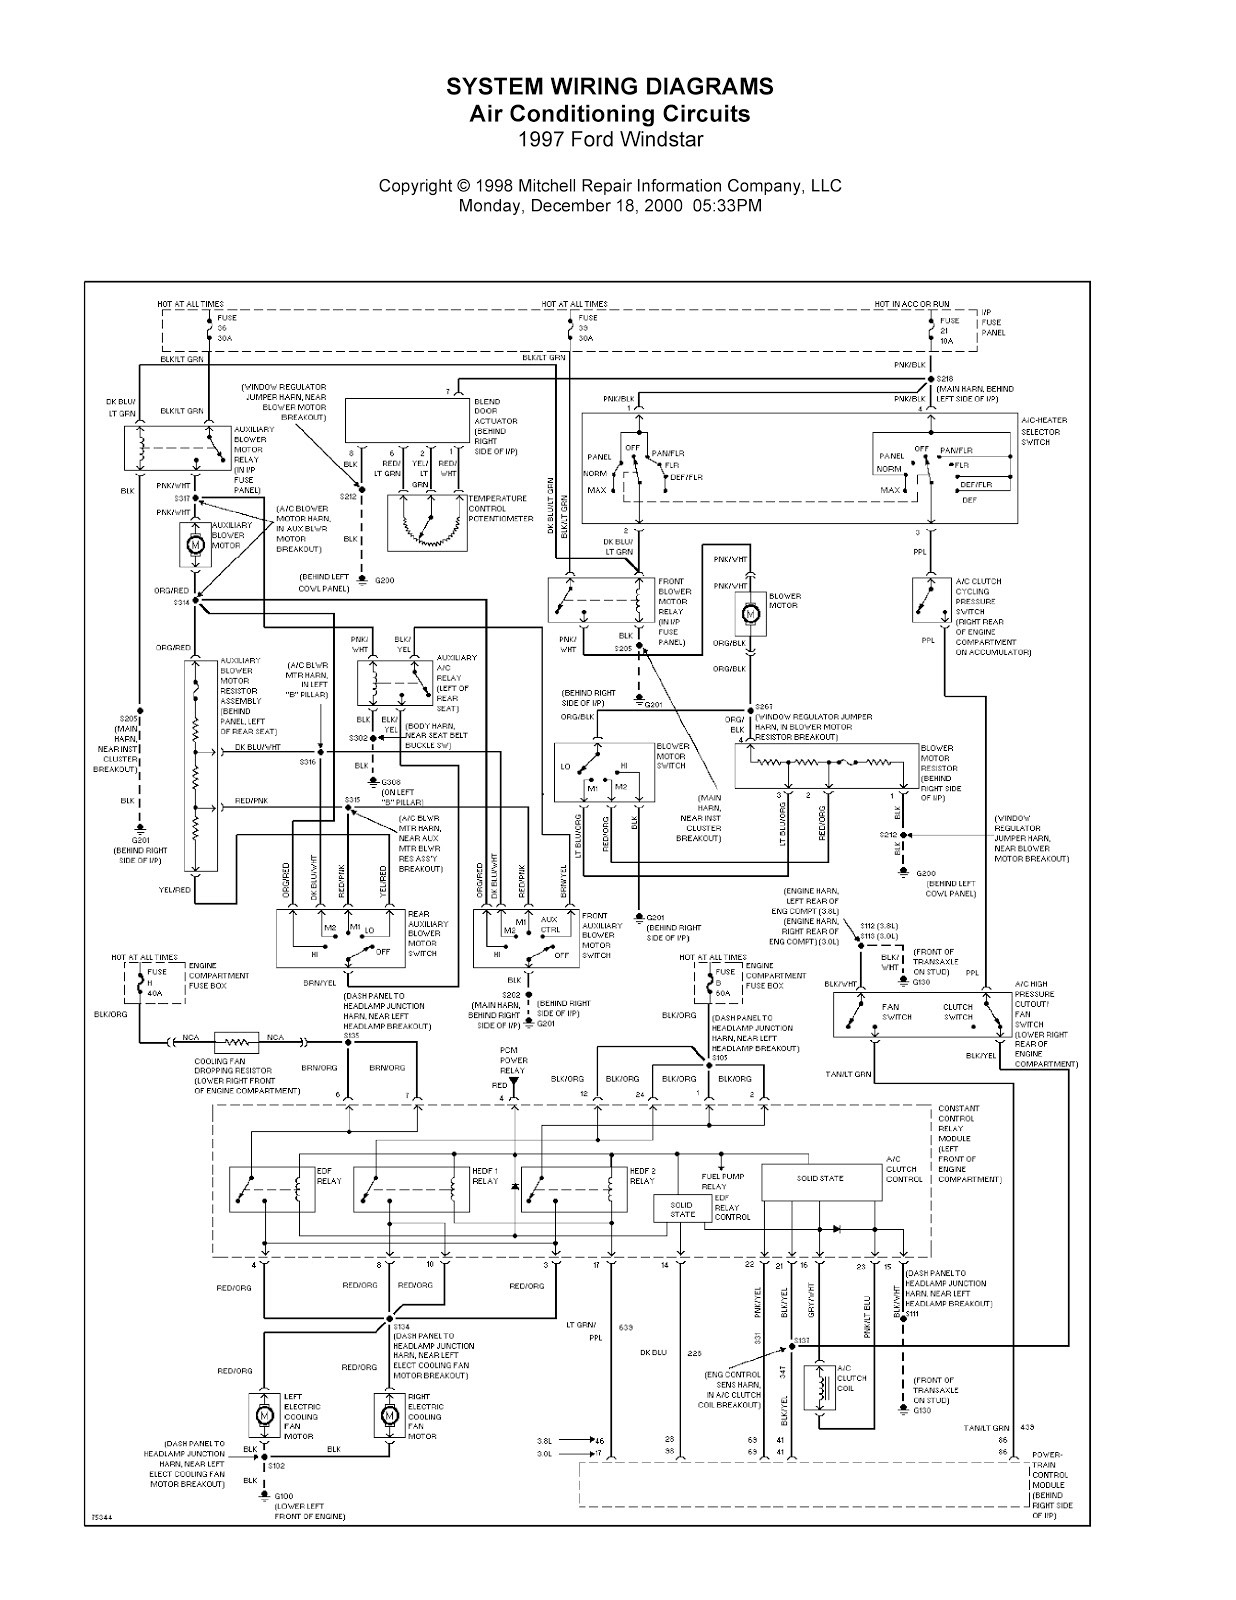 Abs System Diagram Stunning E46 Wiring S Everything You Need Blower Motor Amazing Mgf Gallery To Know Of